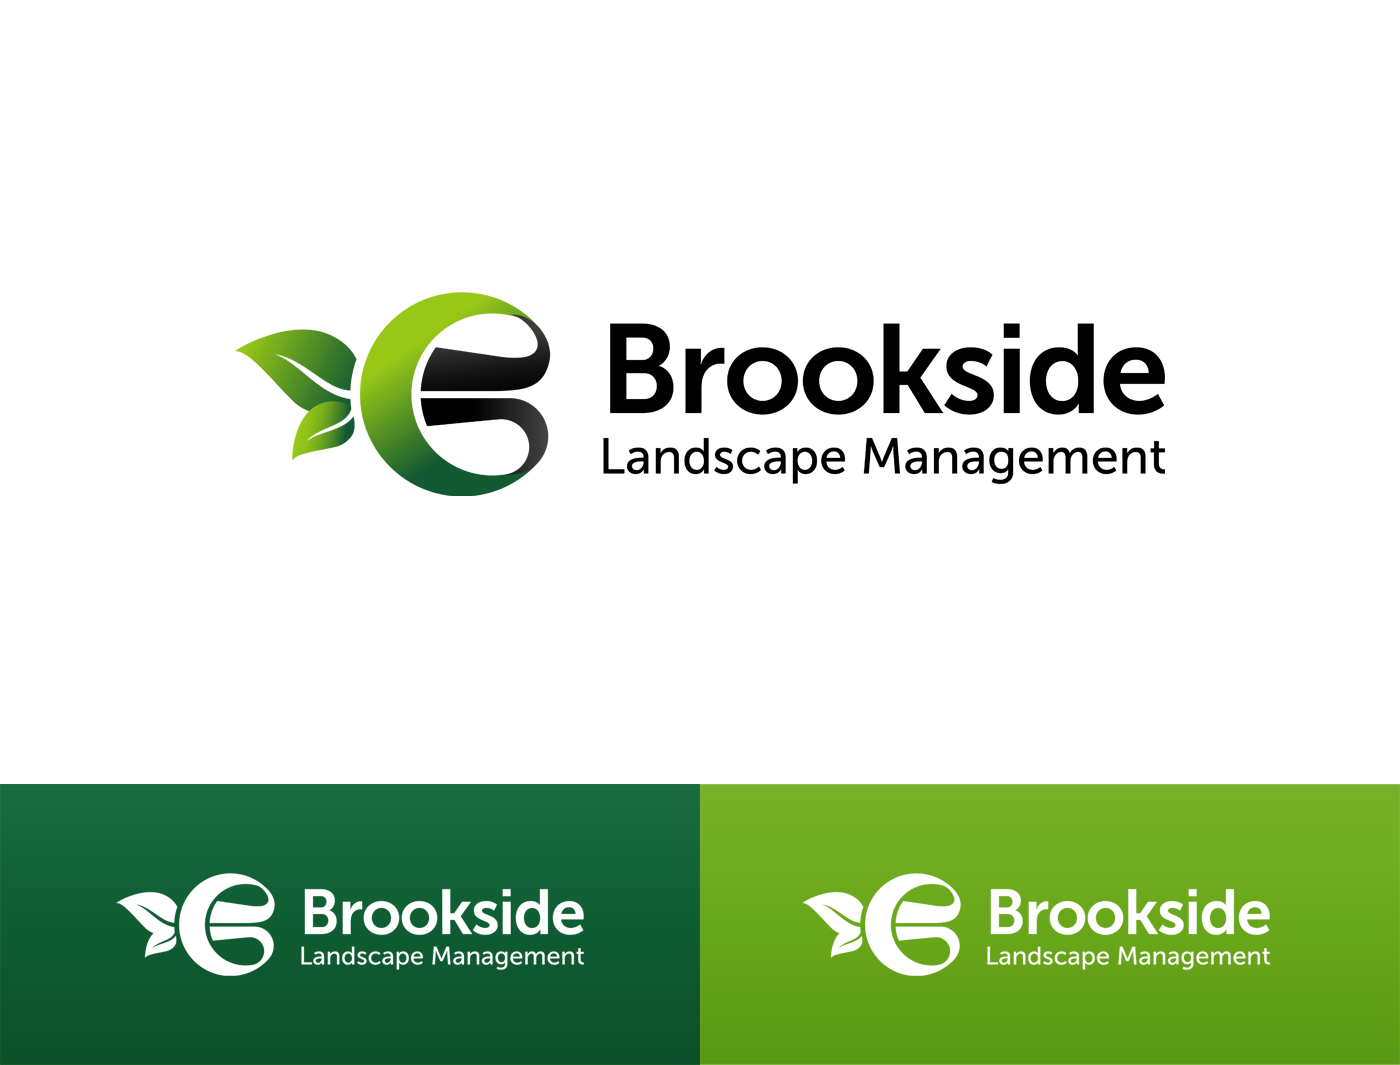 Logo Design by Alexander Osokin - Entry No. 11 in the Logo Design Contest New Logo Design for Brookside Landscape Management.